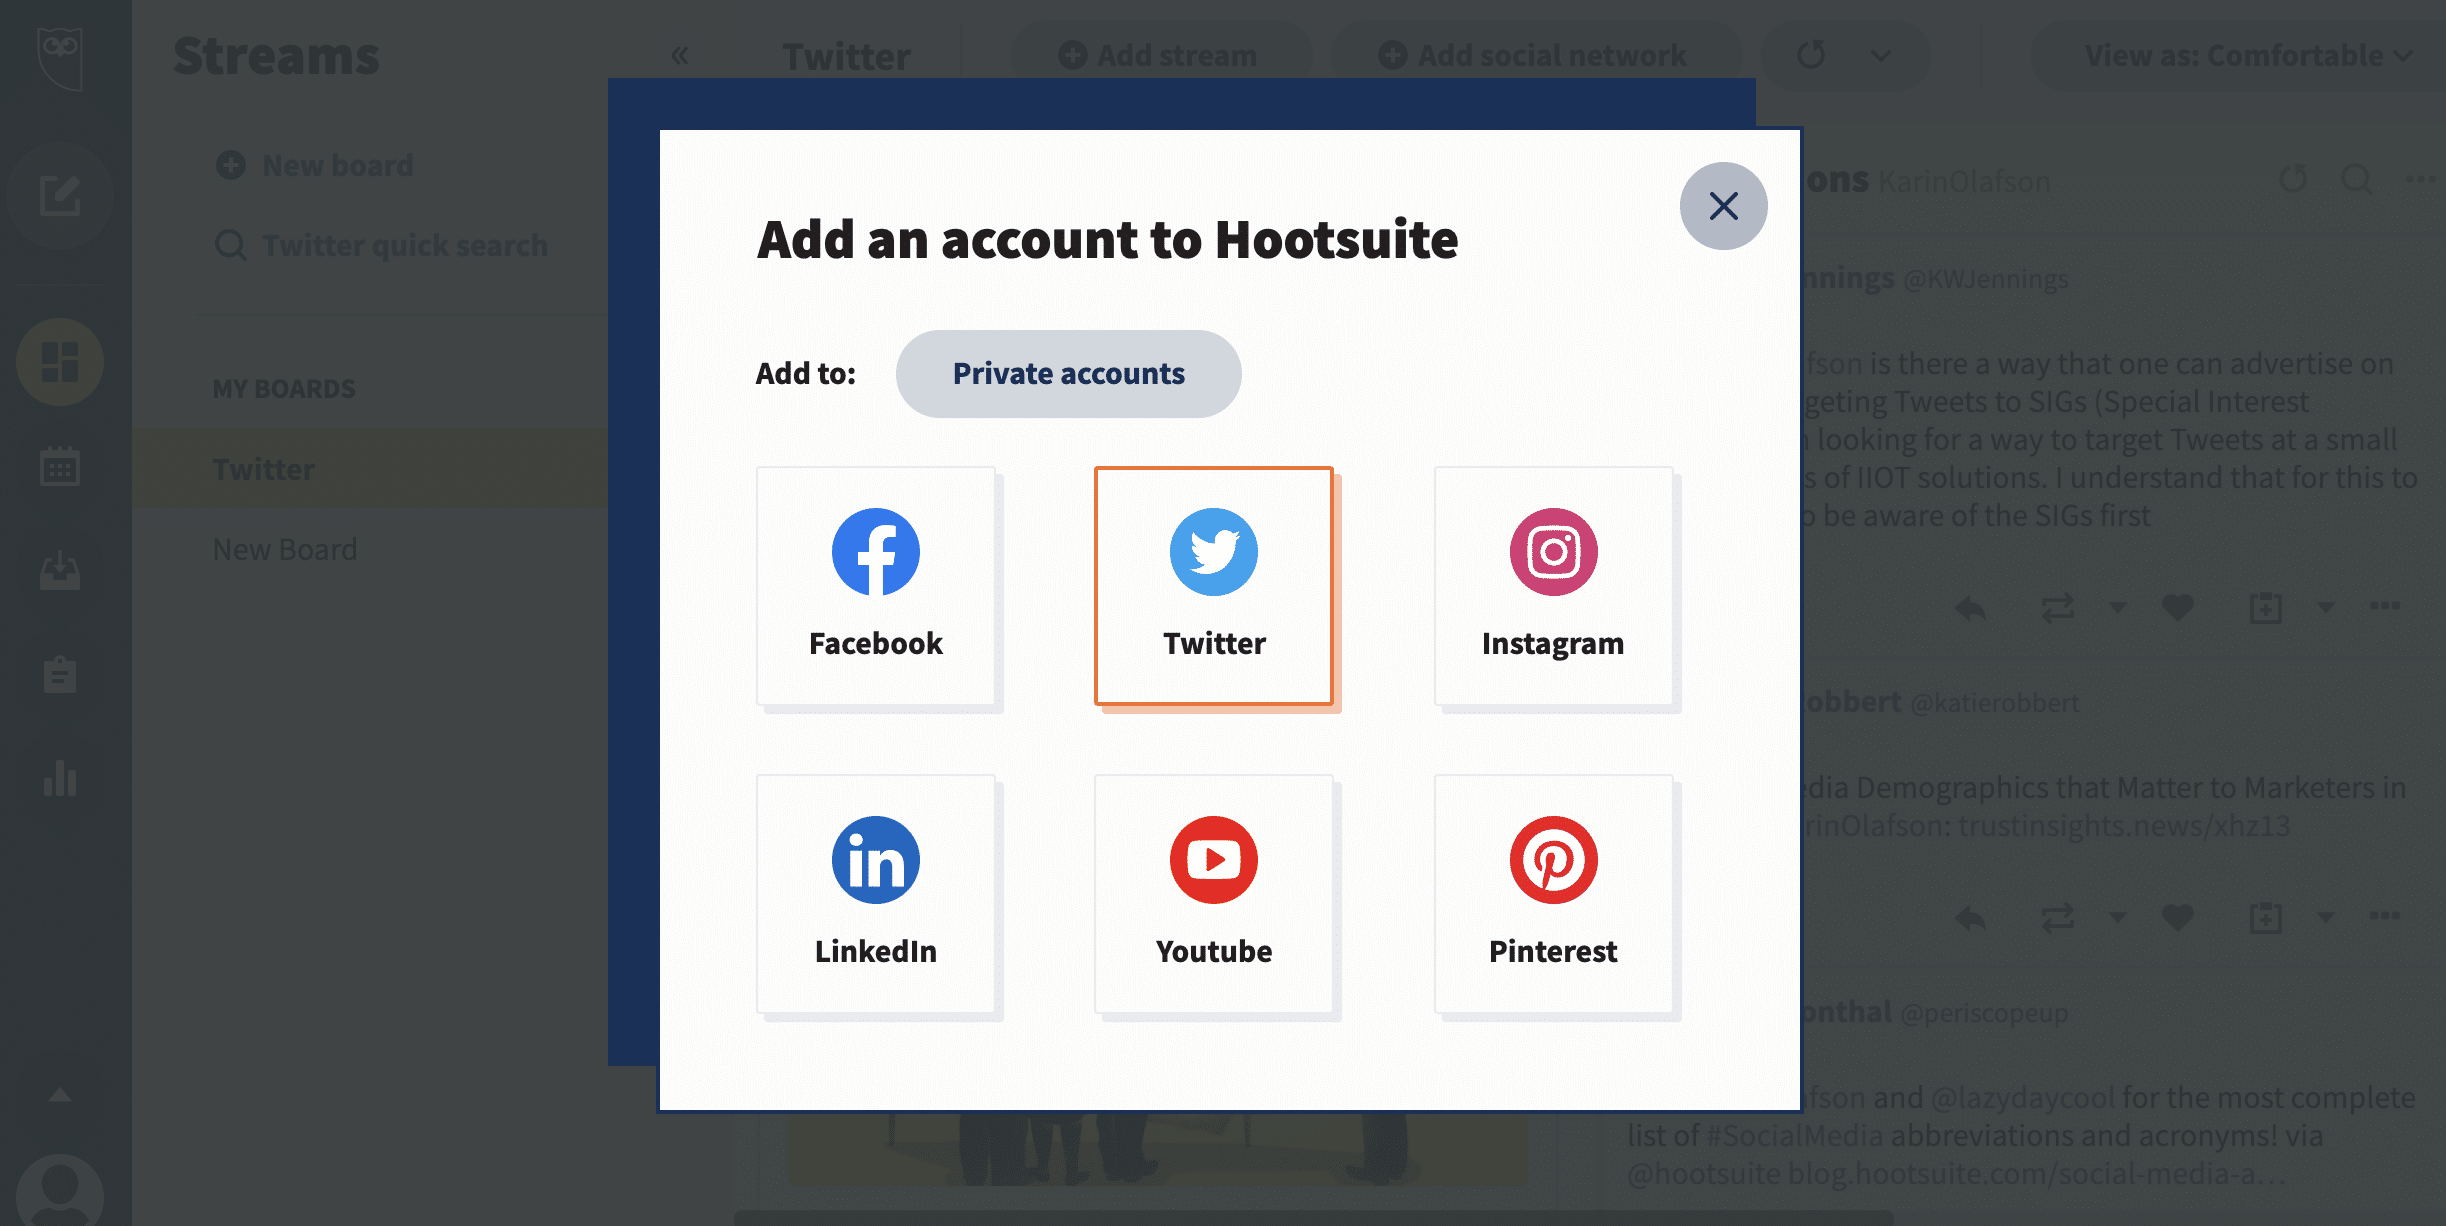 add Twitter account to Hootsuite